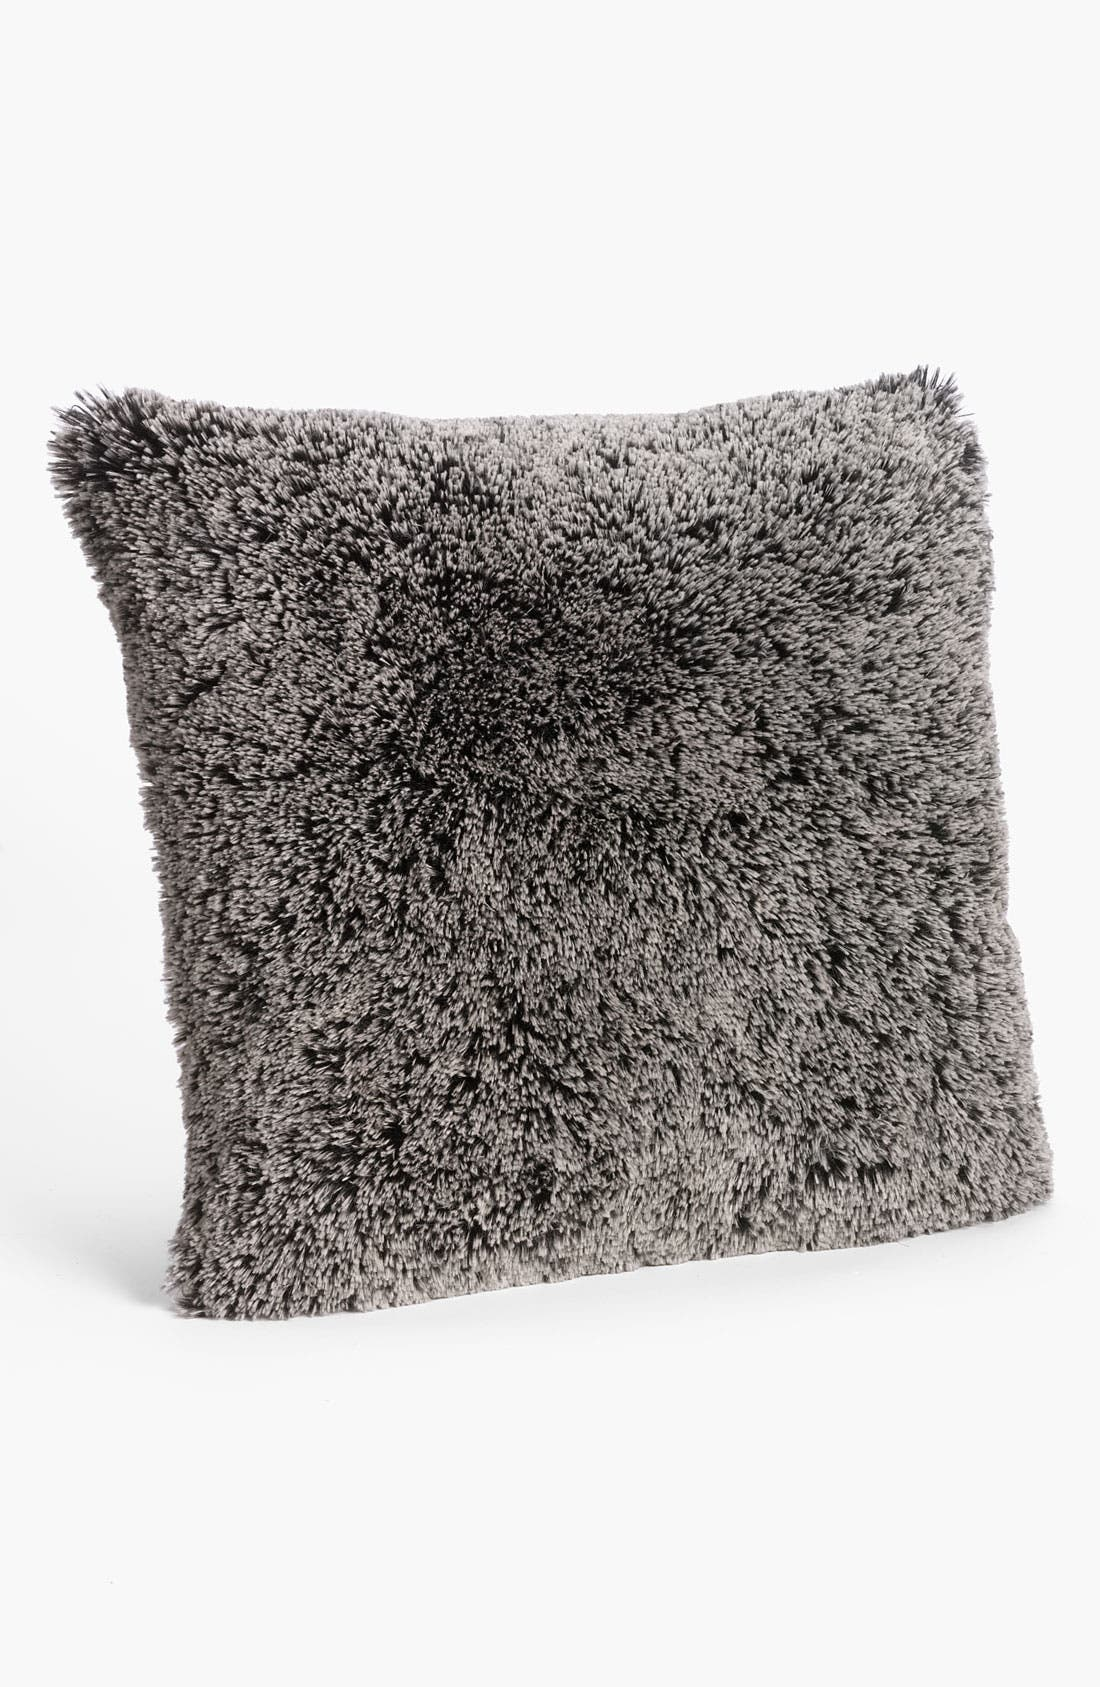 Alternate Image 1 Selected - Brentwood Originals Tipped Faux Fur Pillow